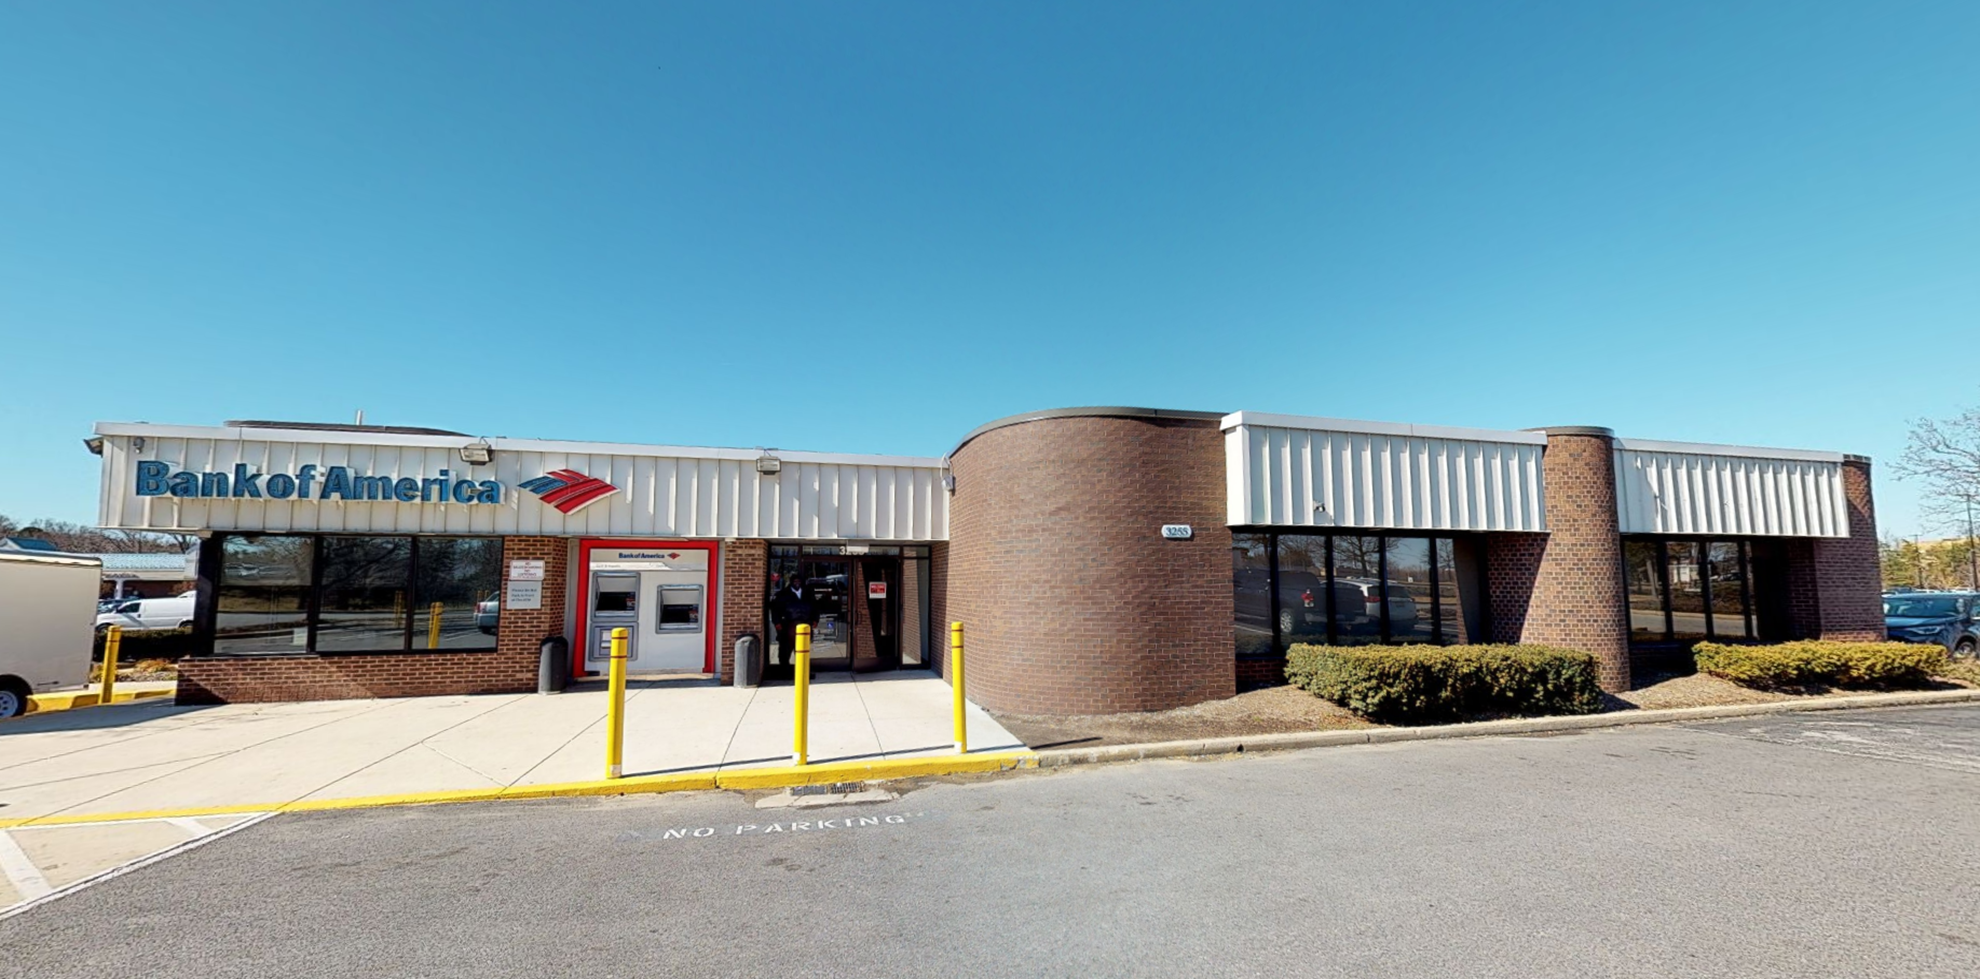 Bank of America financial center with drive-thru ATM | 3255 Crain Hwy, Waldorf, MD 20603